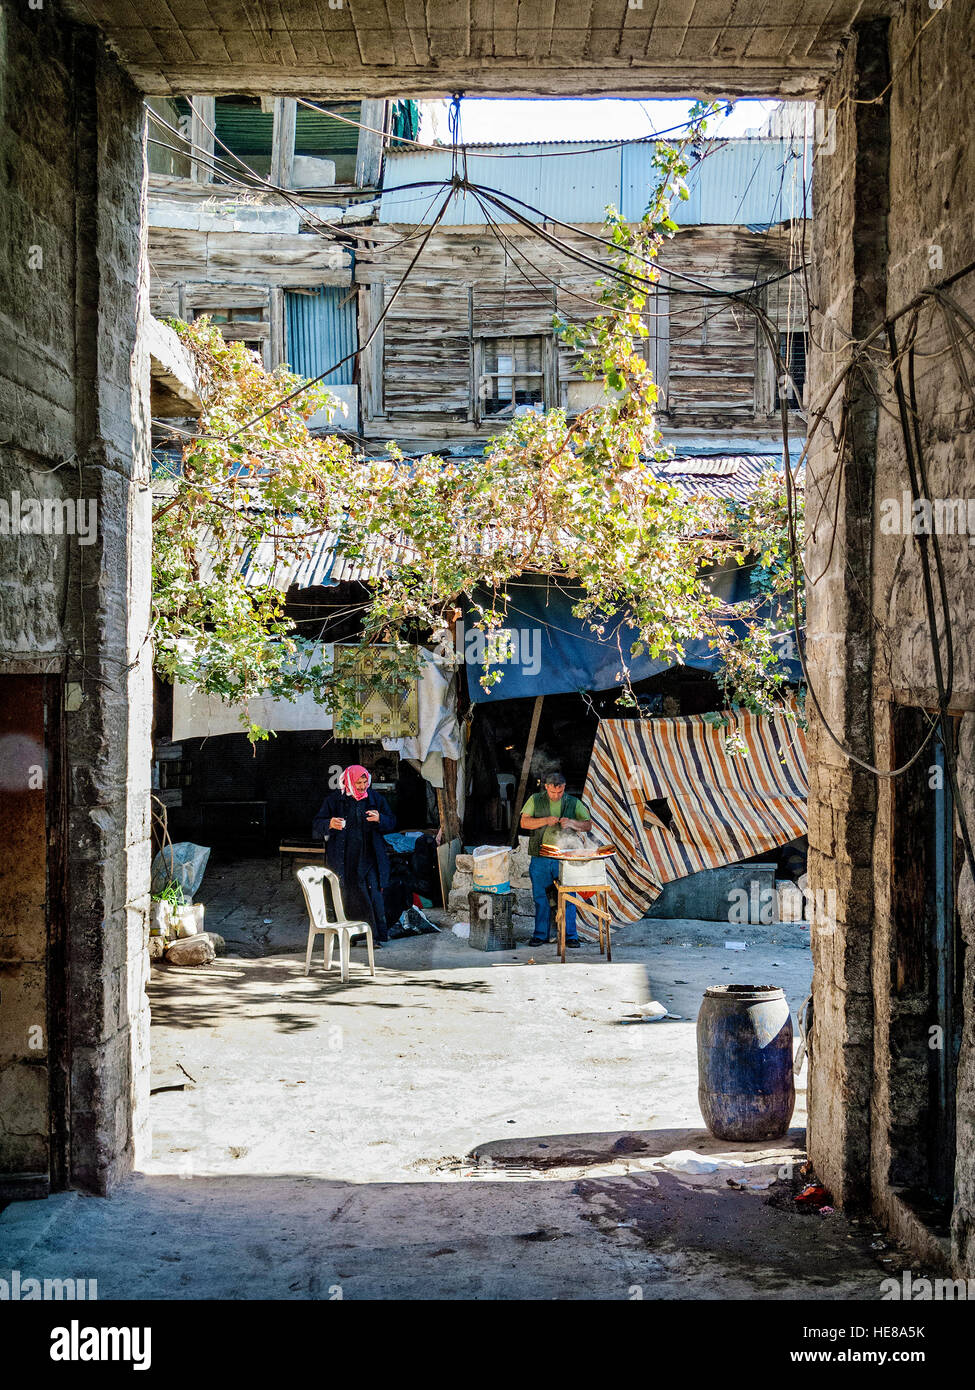 street view in central old damascus city in syria Stock Photo